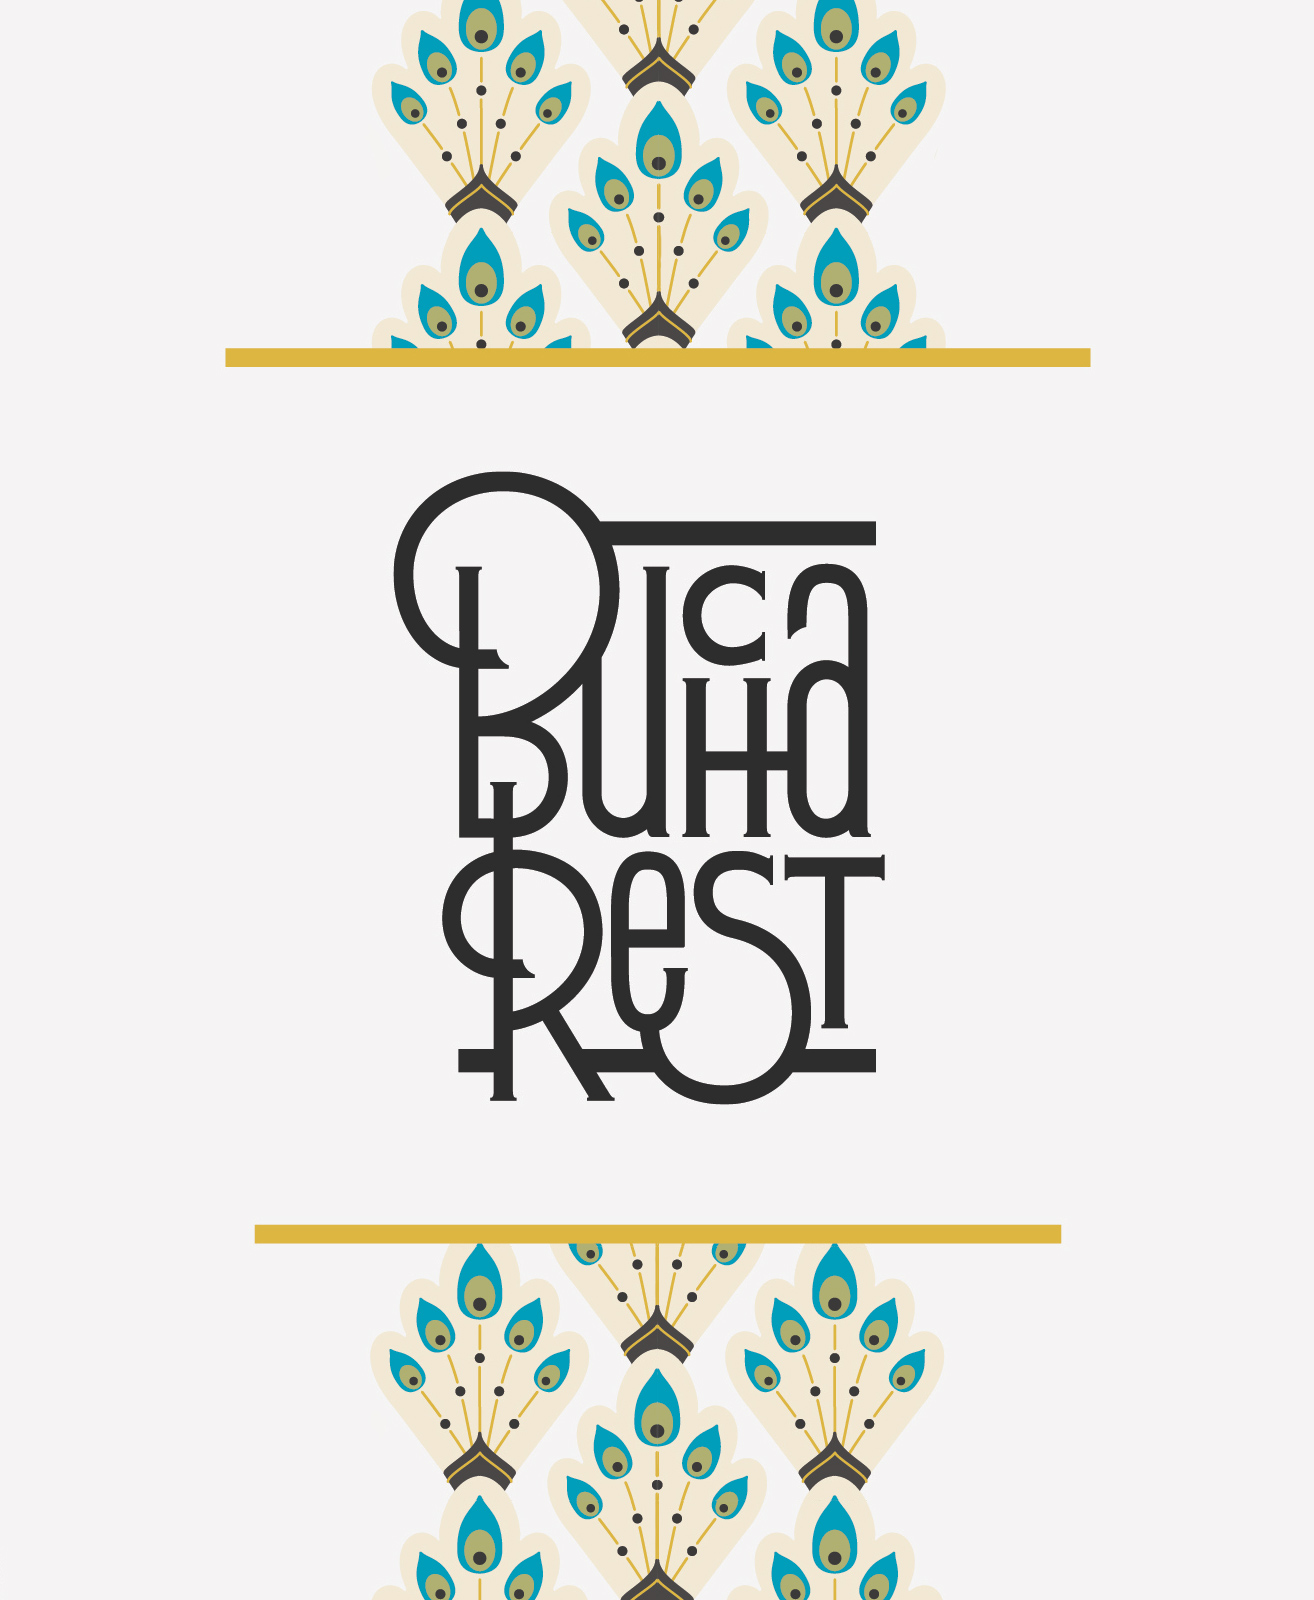 Bucharest's New Logo with Visual Theme